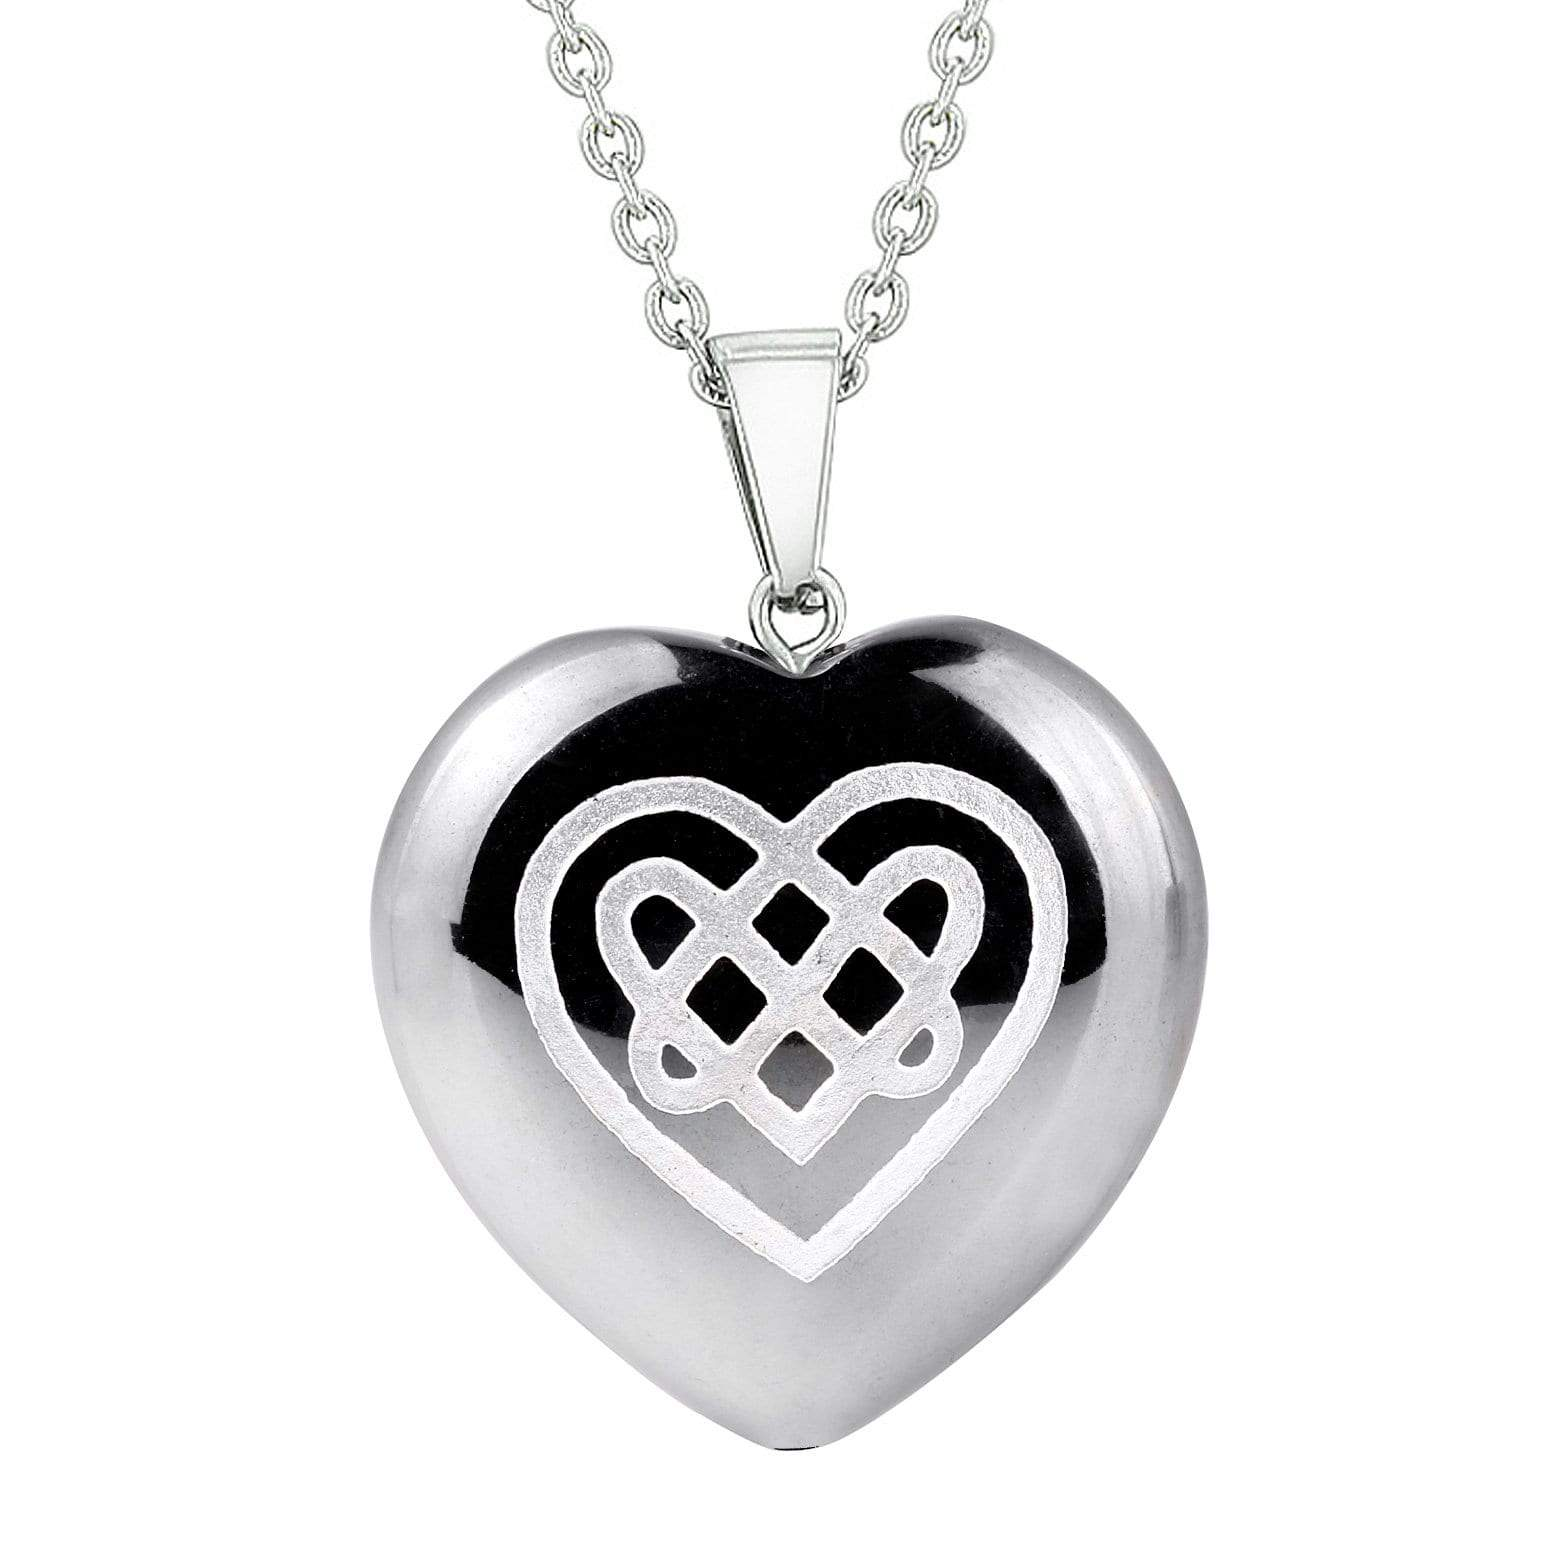 Amulet Celtic Shiled Knot Heart Powers Protection Energy Hematite Puffy Heart Pendant Necklace